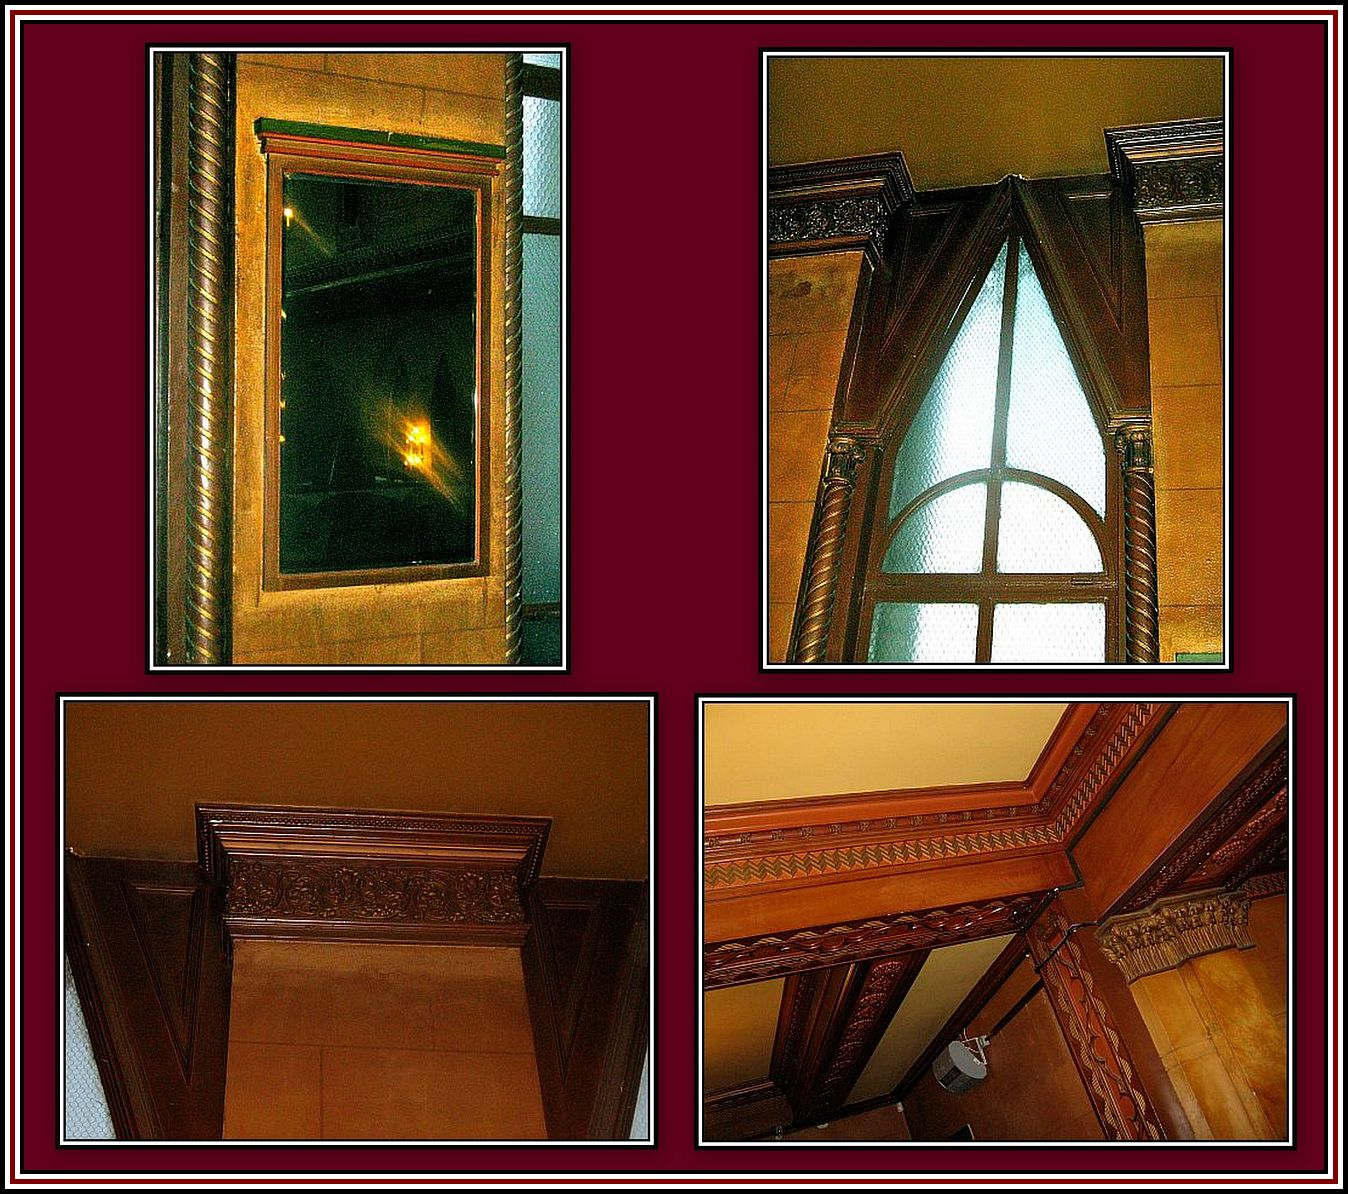 Miror Window and Decoration Collage